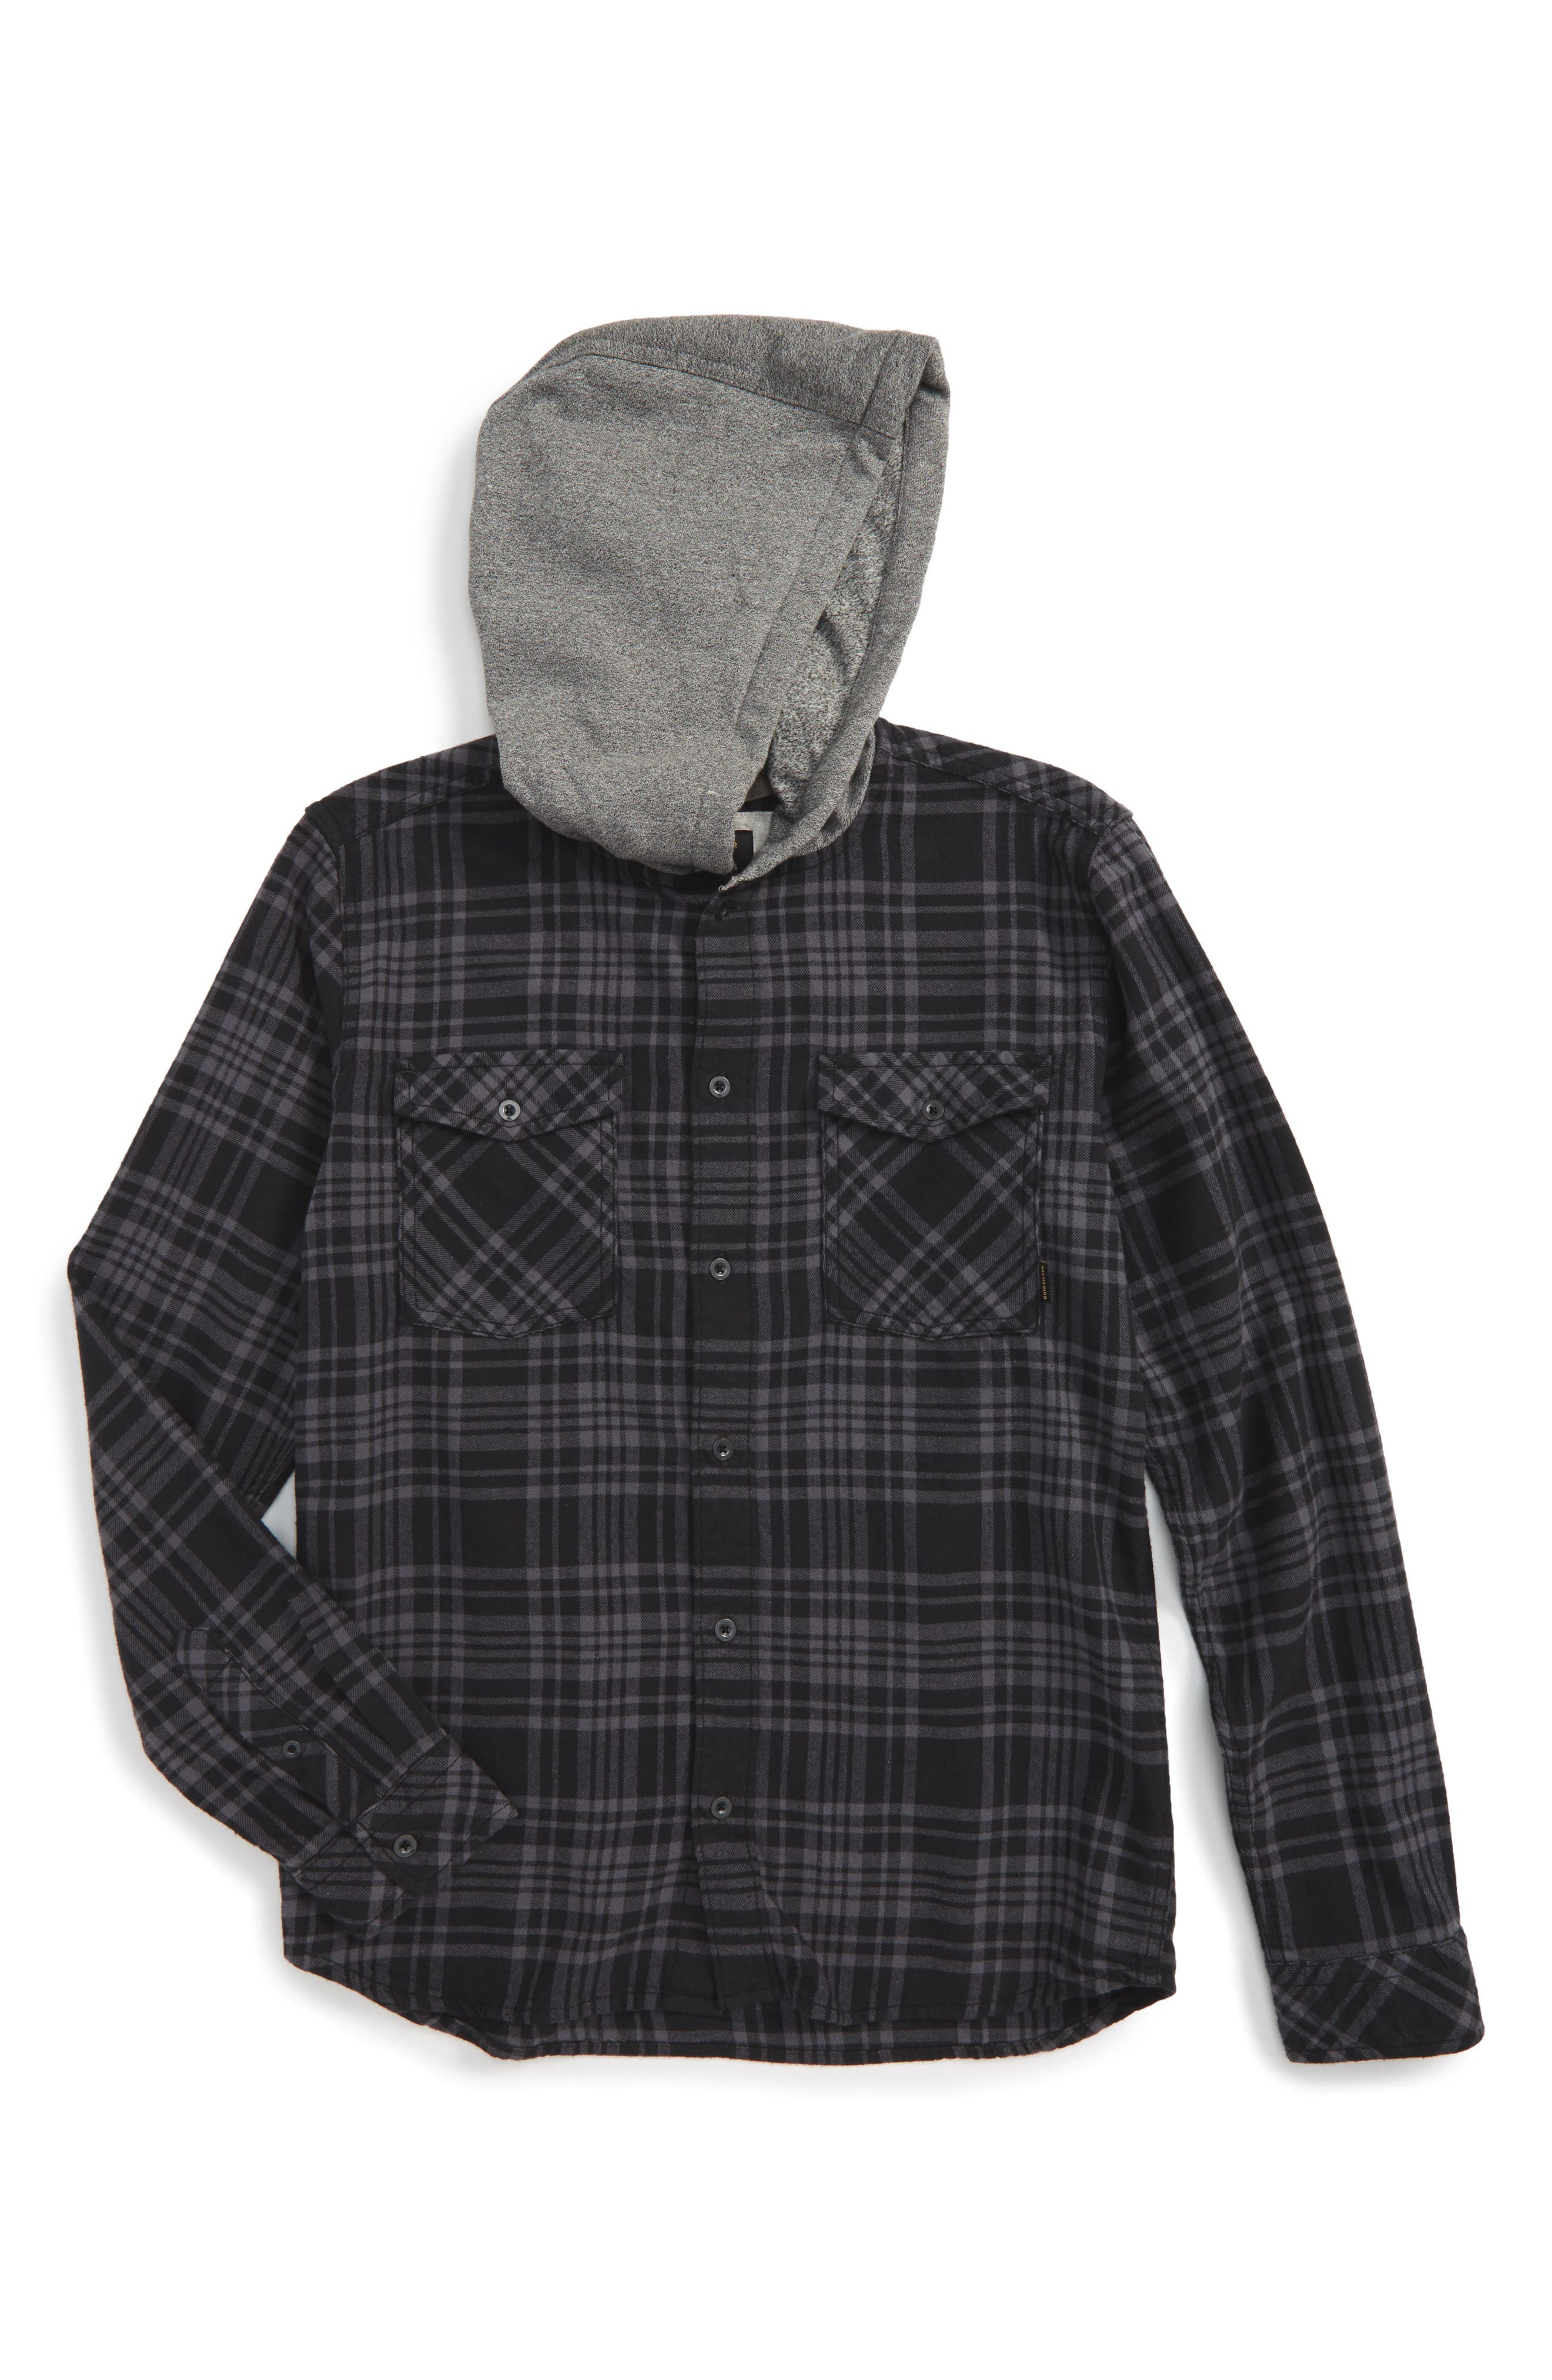 Alternate Image 1 Selected - Quiksilver Hooded Plaid Woven Shirt (Toddler Boys, Little Boys & Big Boys)